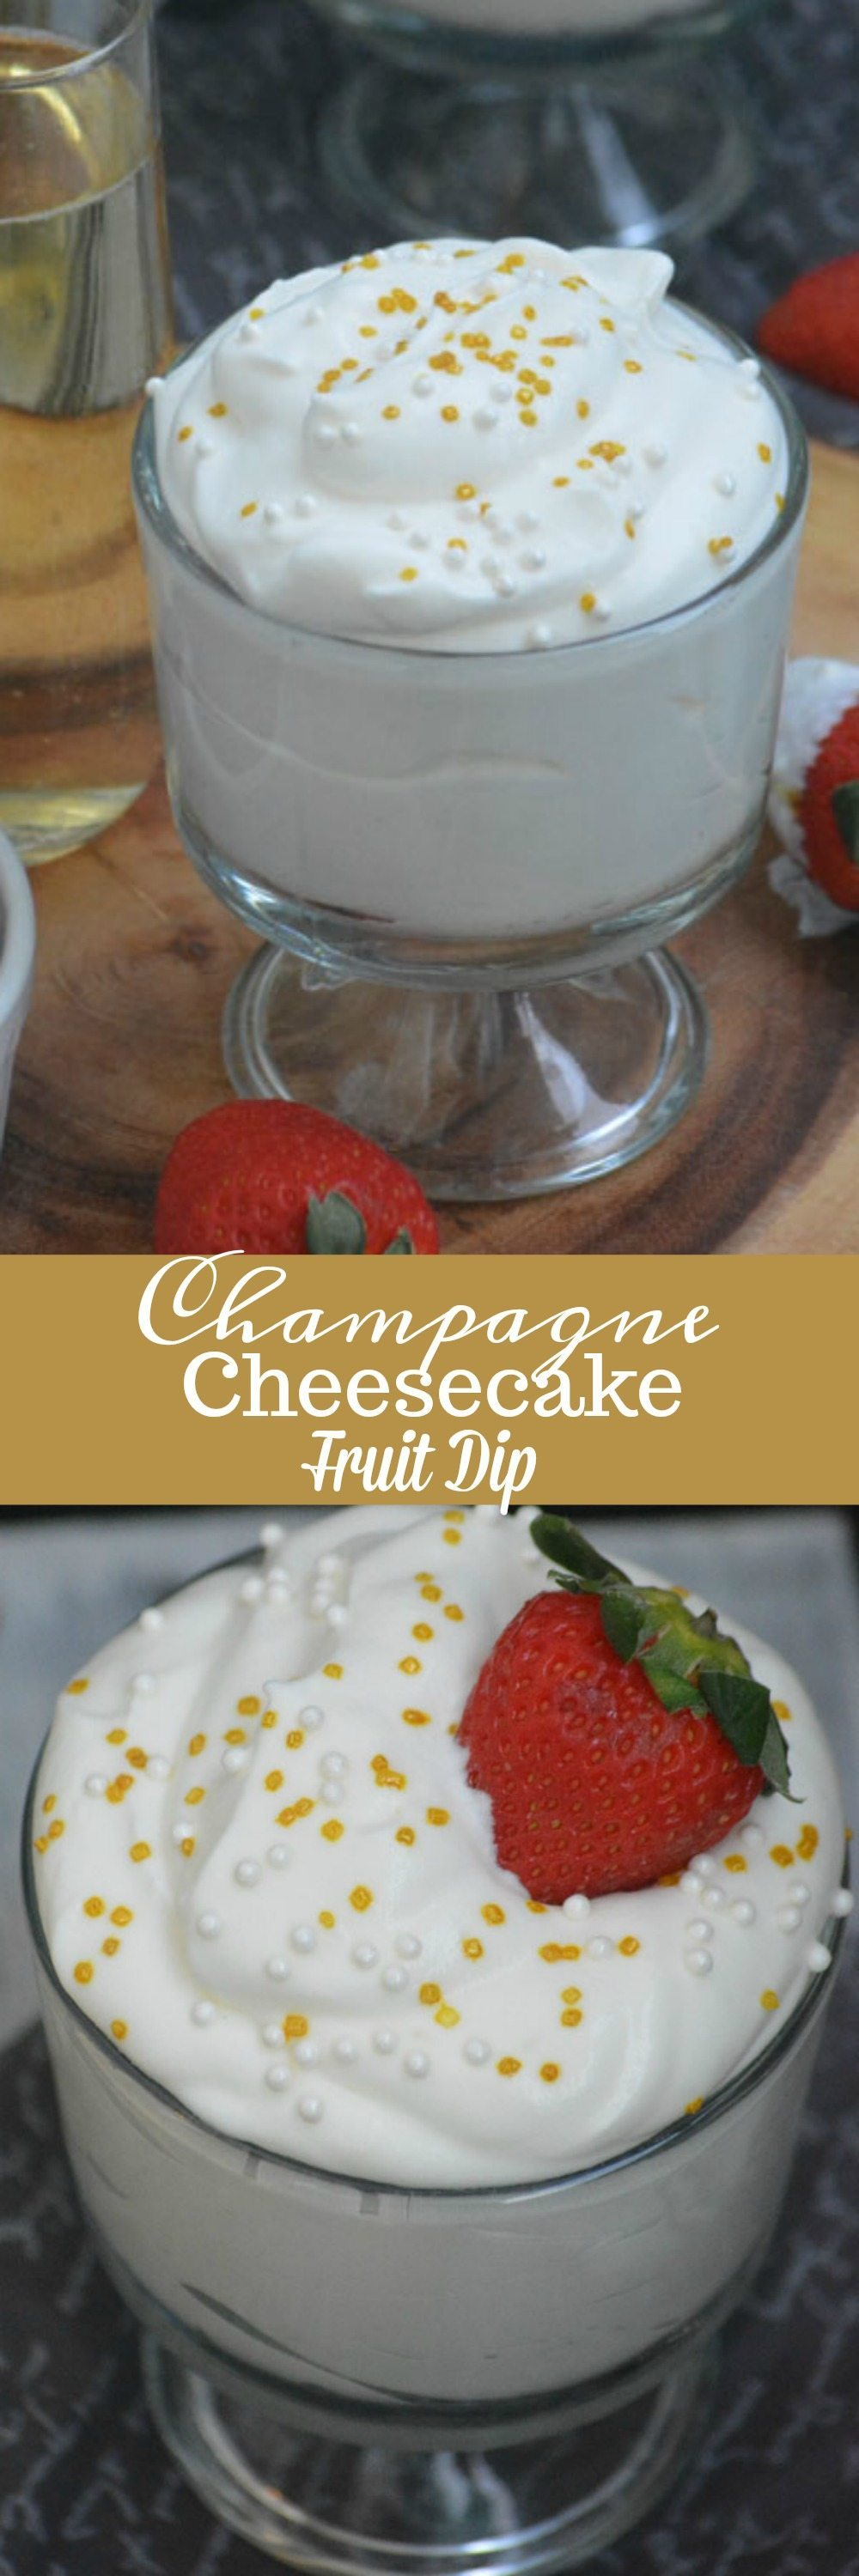 This fun Champagne Cheesecake Fruit Dip is a must have at any holiday gathering. It's quick & easy enough, even for the last minute, and pairs perfectly with fresh fruit you already have on hand. Simple, yet gourmet, it's the best way to ring in the New Year.